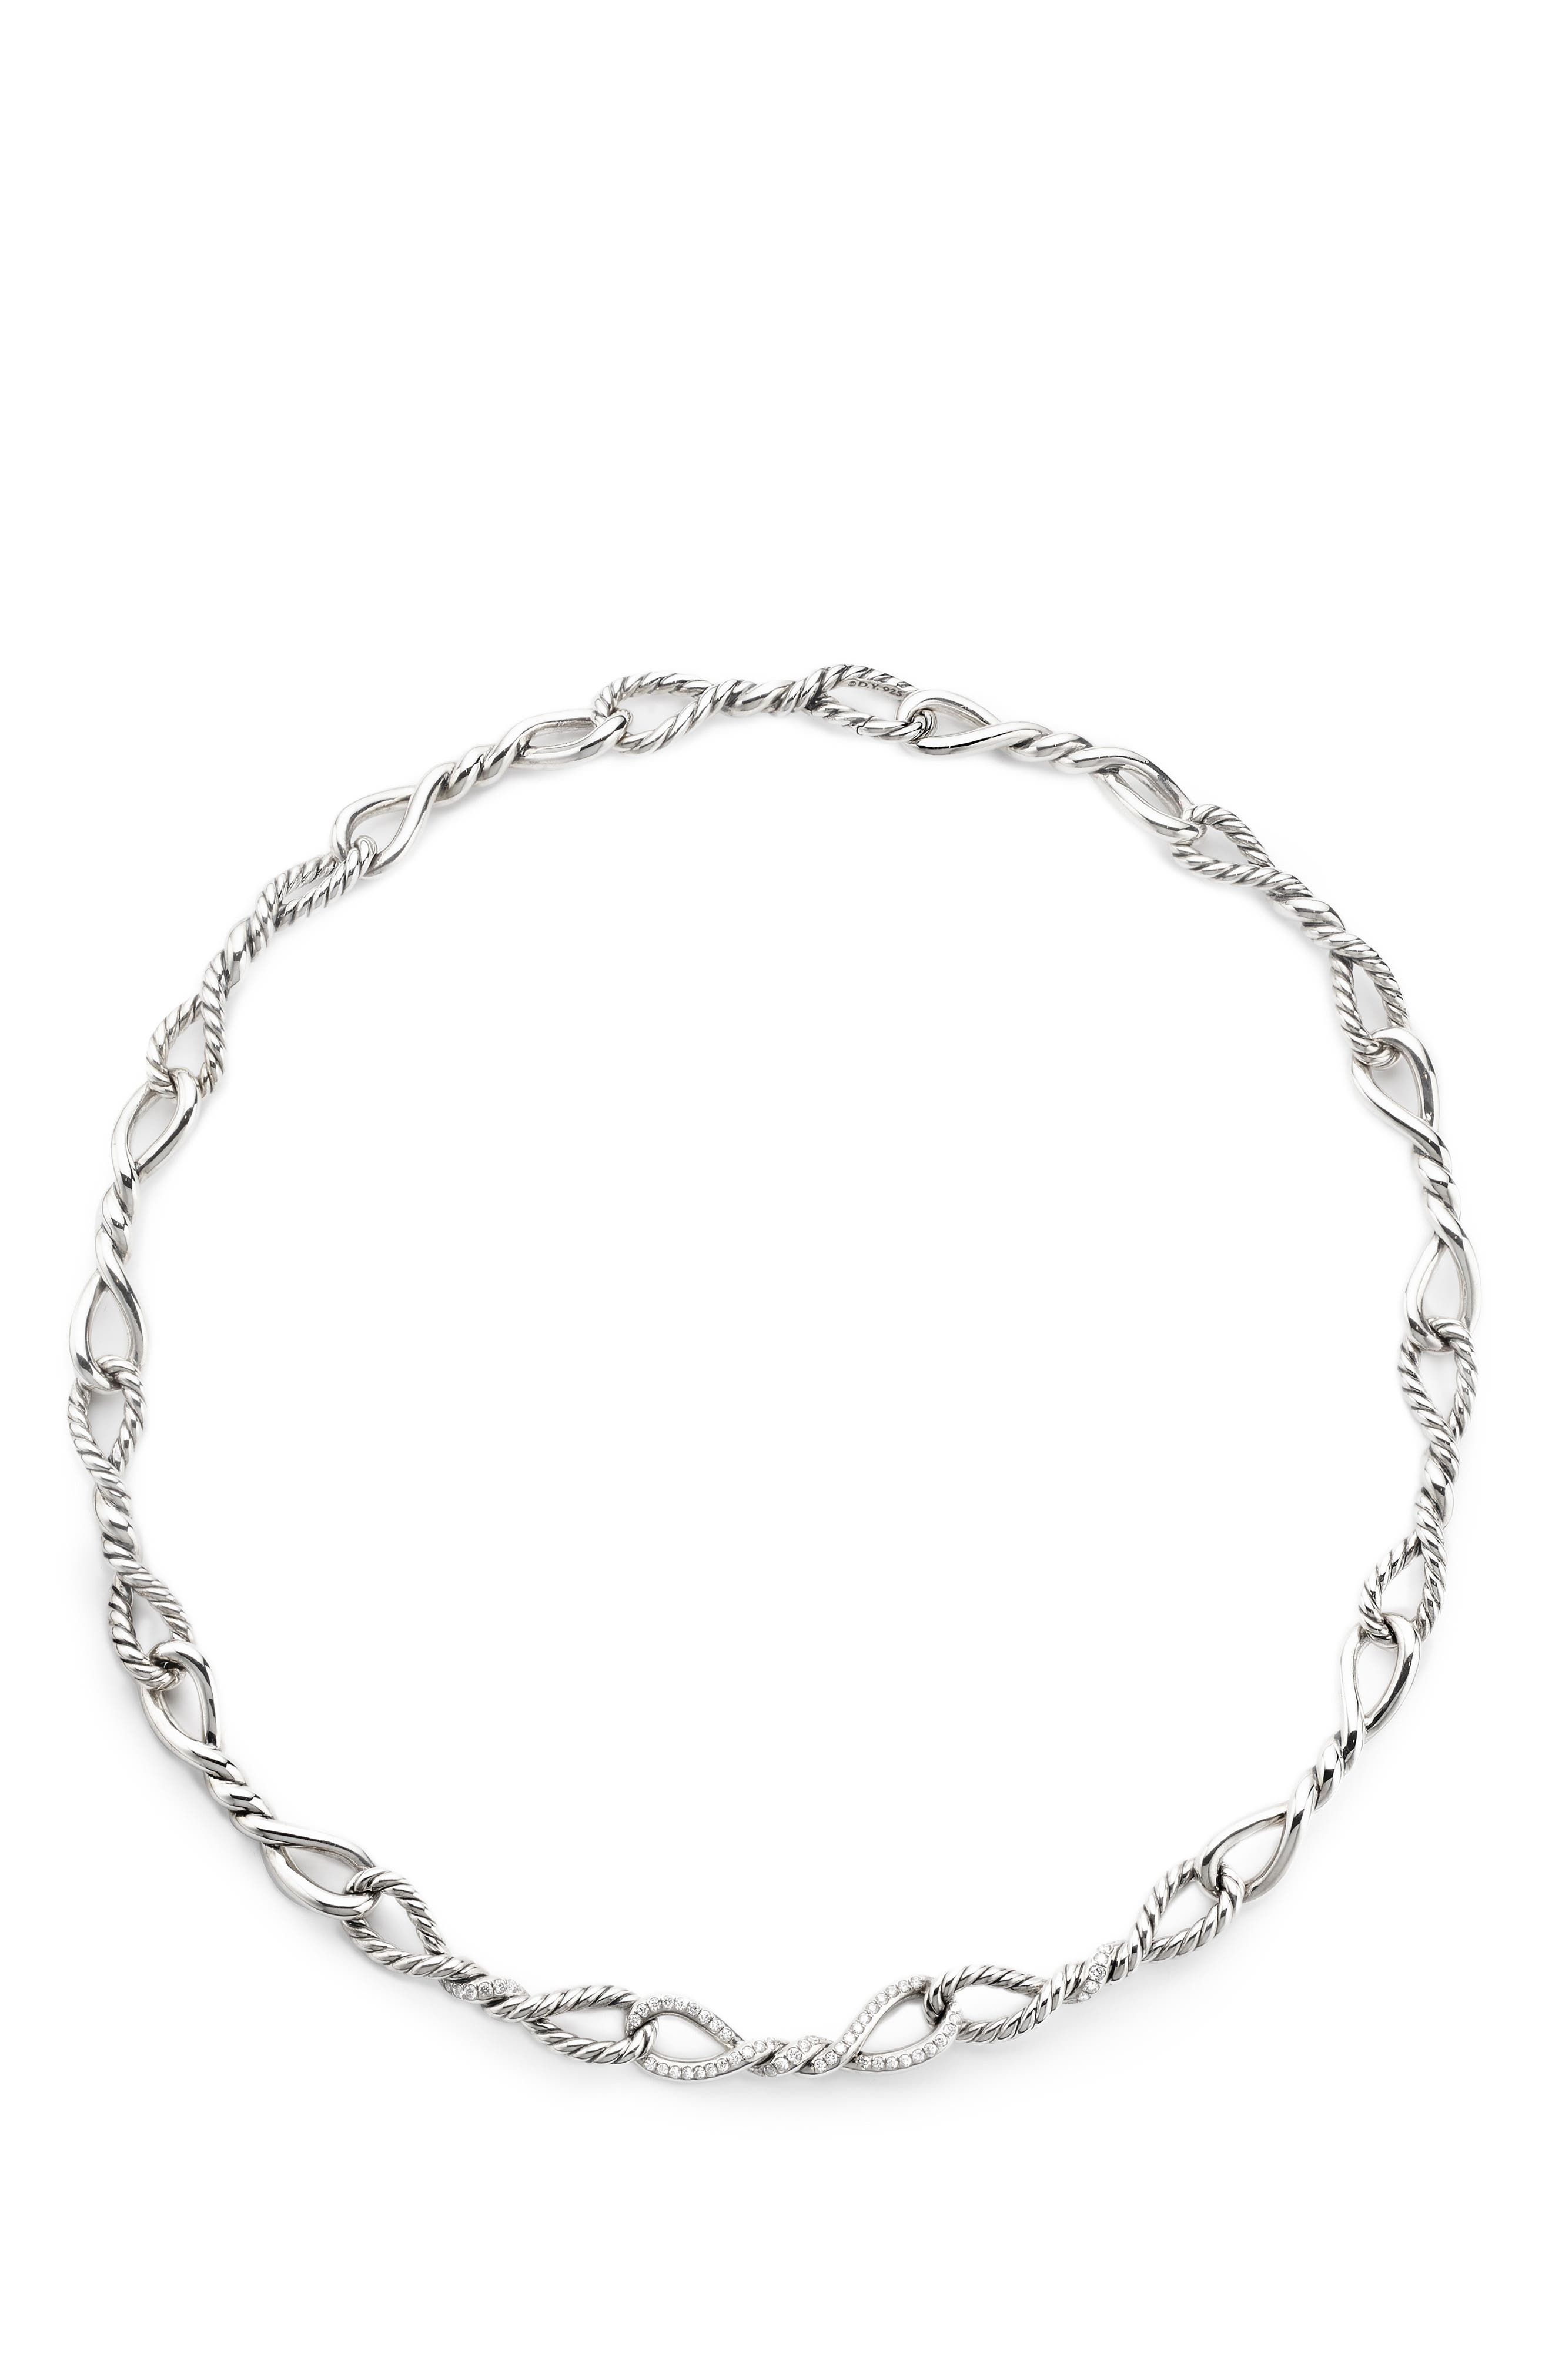 Continuance Short Linked Necklace with Diamonds,                         Main,                         color, SILVER/ DIAMOND